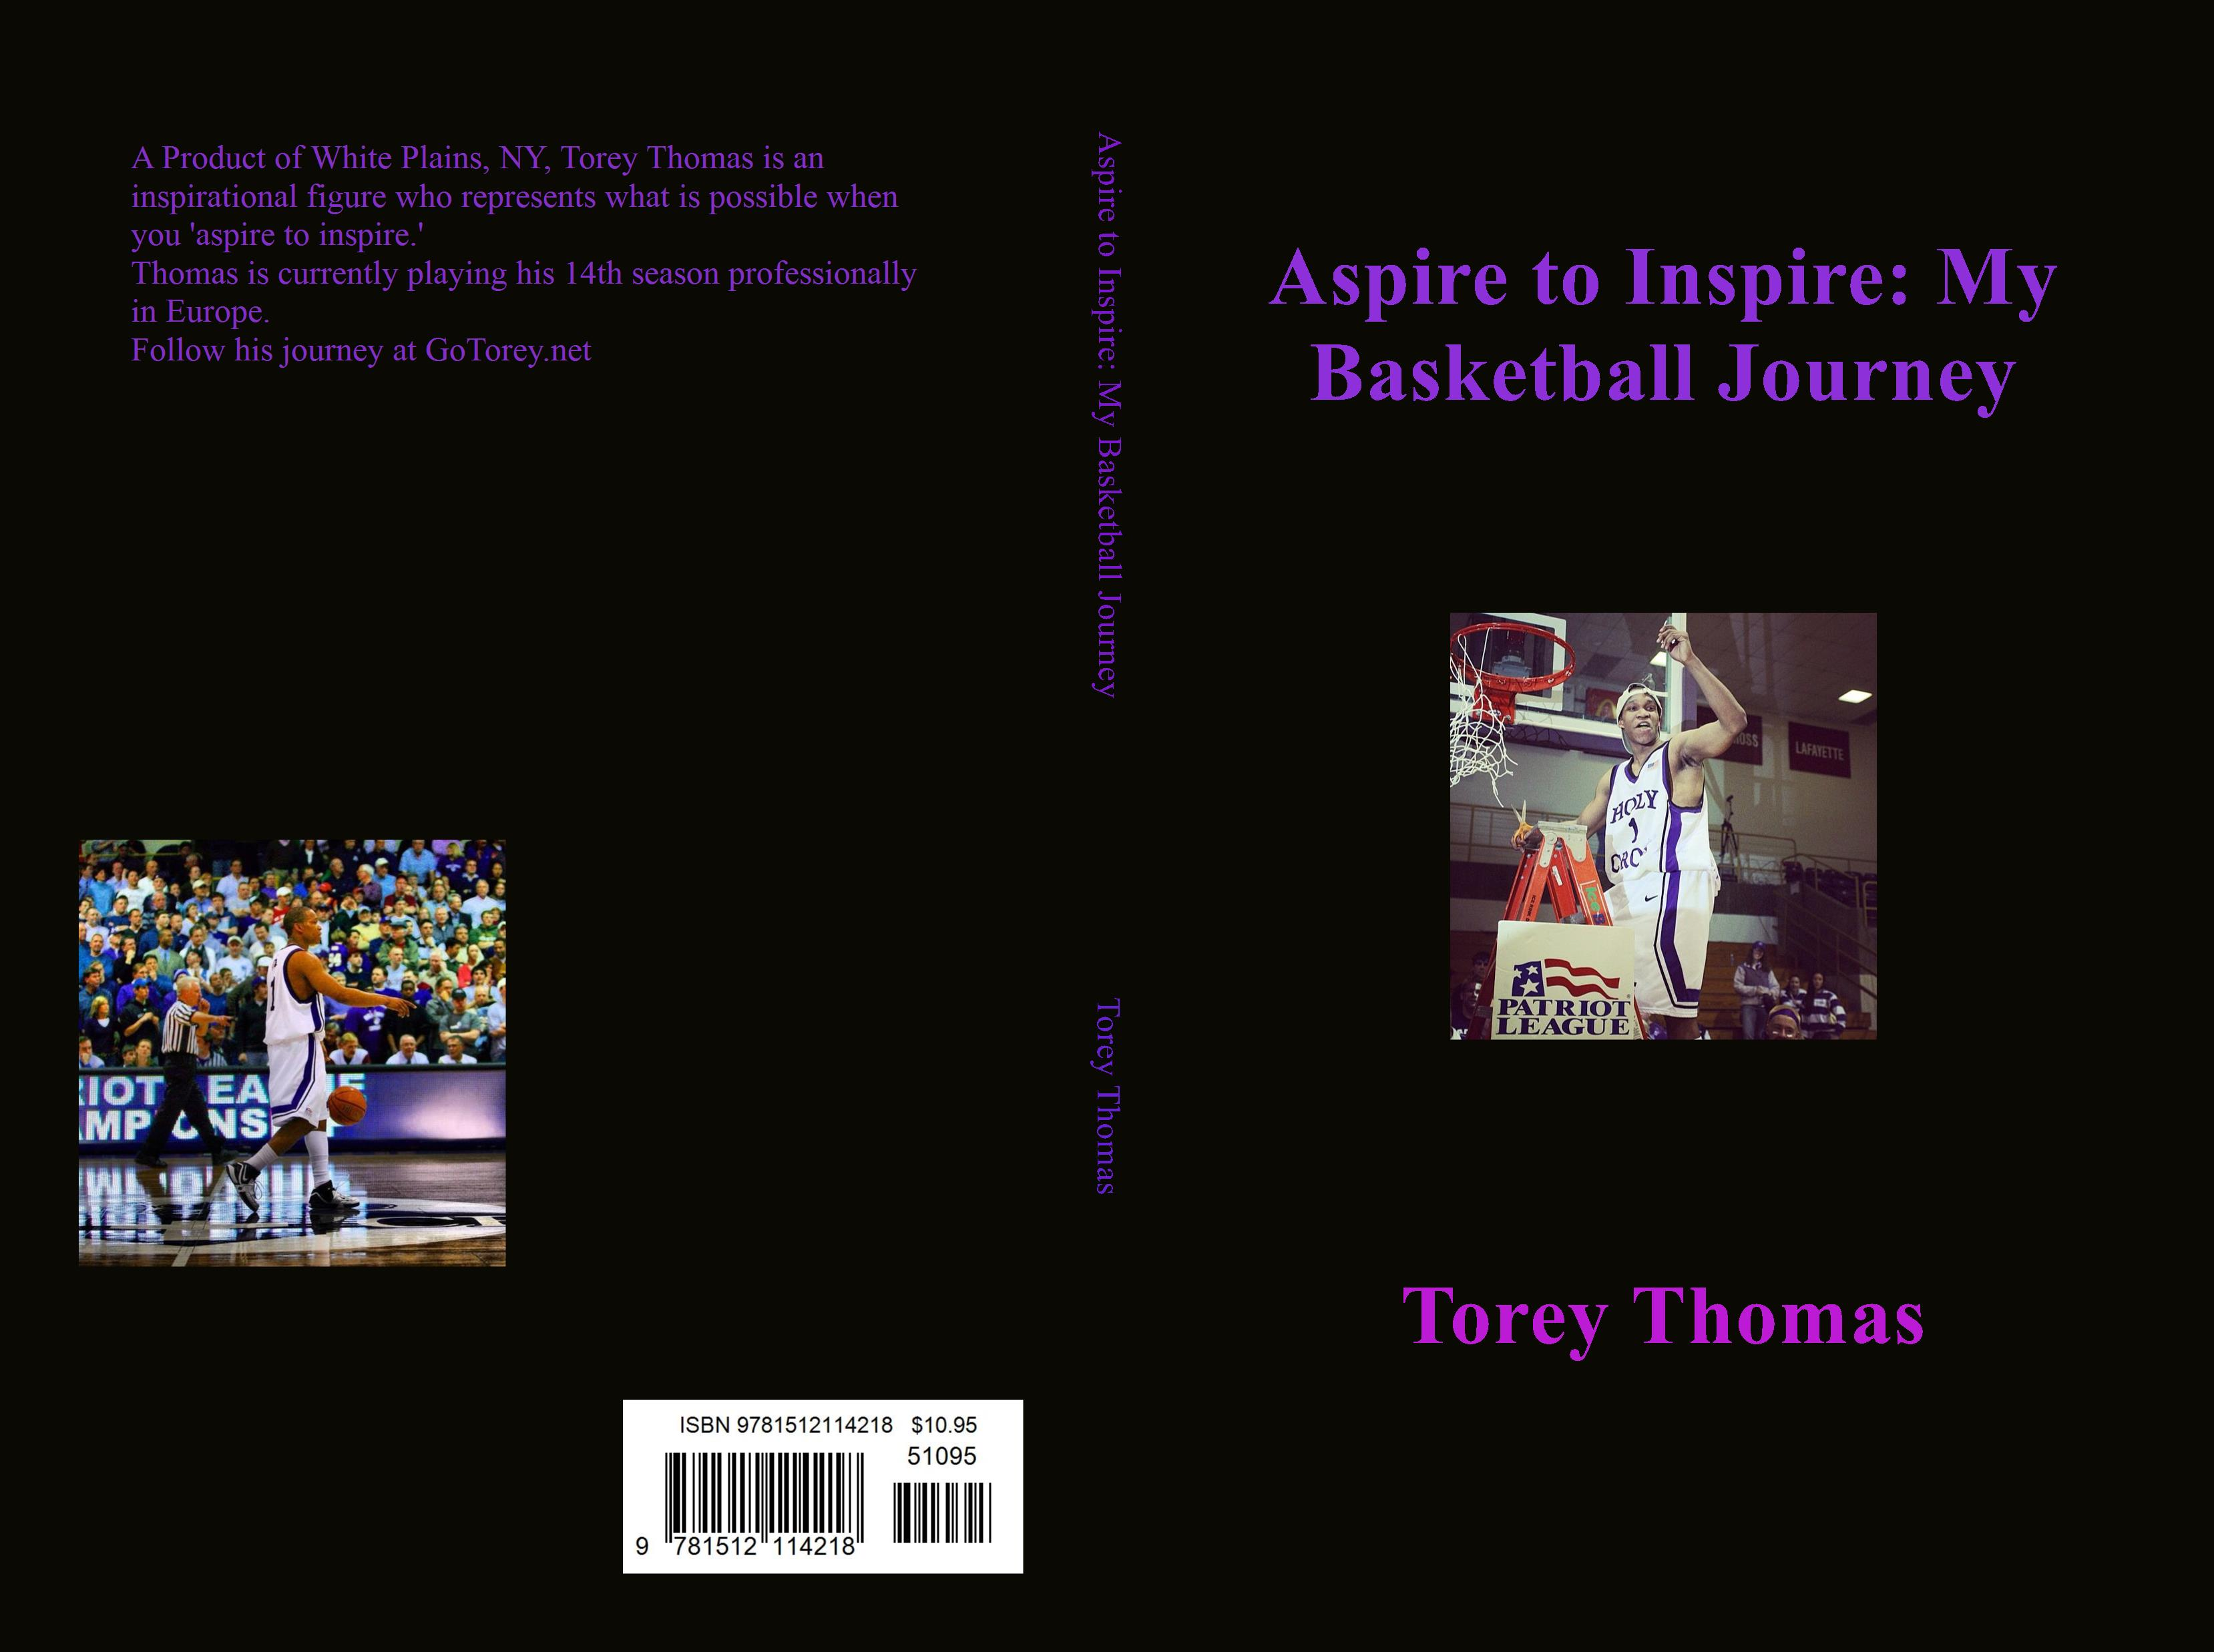 Aspire to Inspire: My Basketball Journey cover image